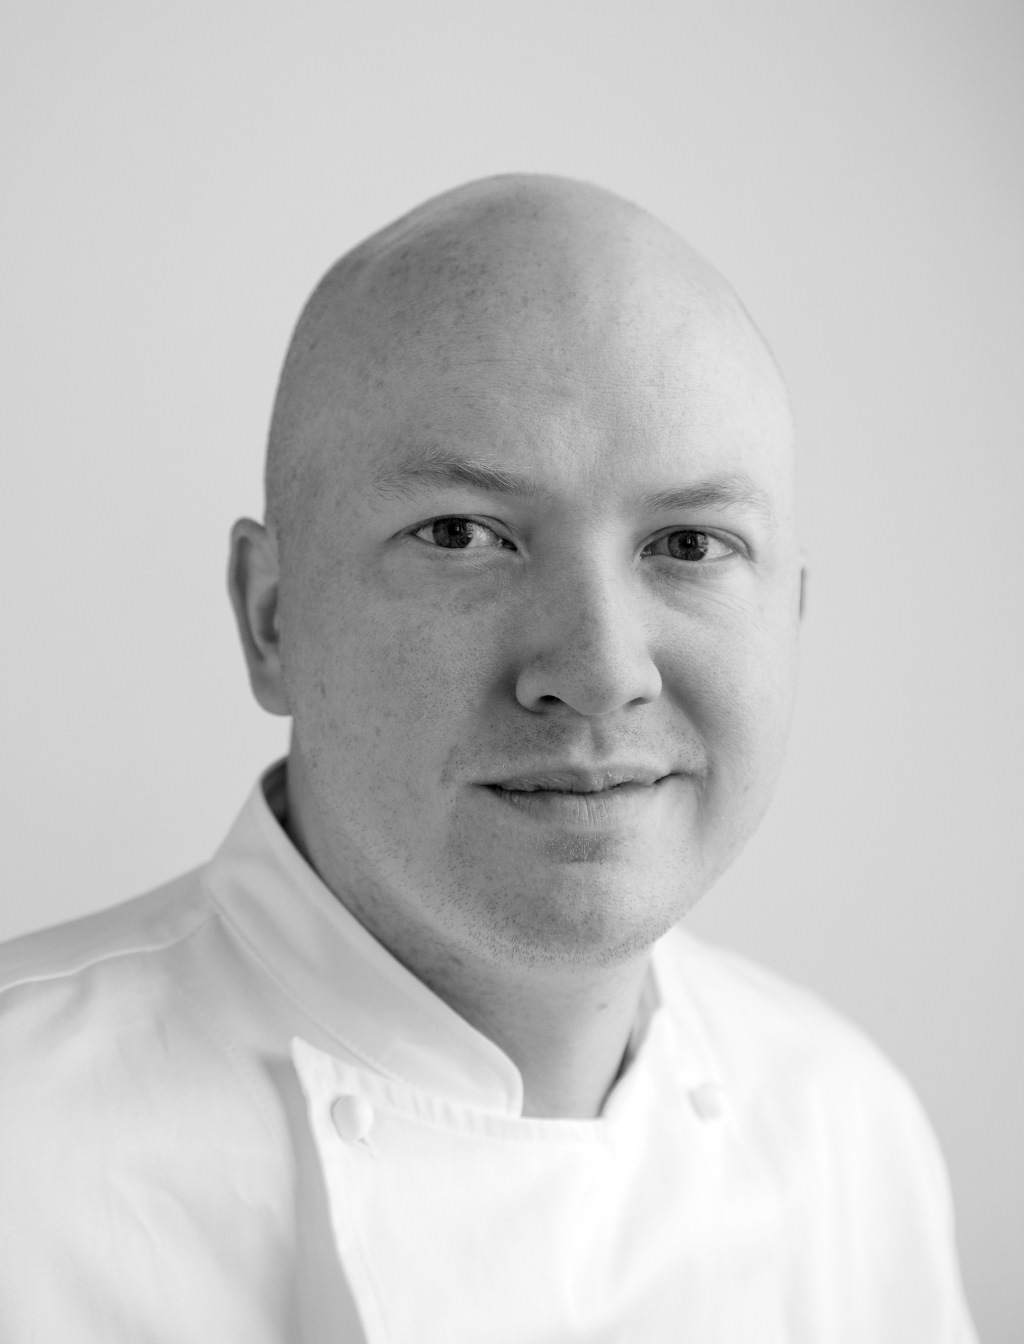 Lowlands Group Hires James Beard-Nominated Chef Thomas Hauck as Culinary Director